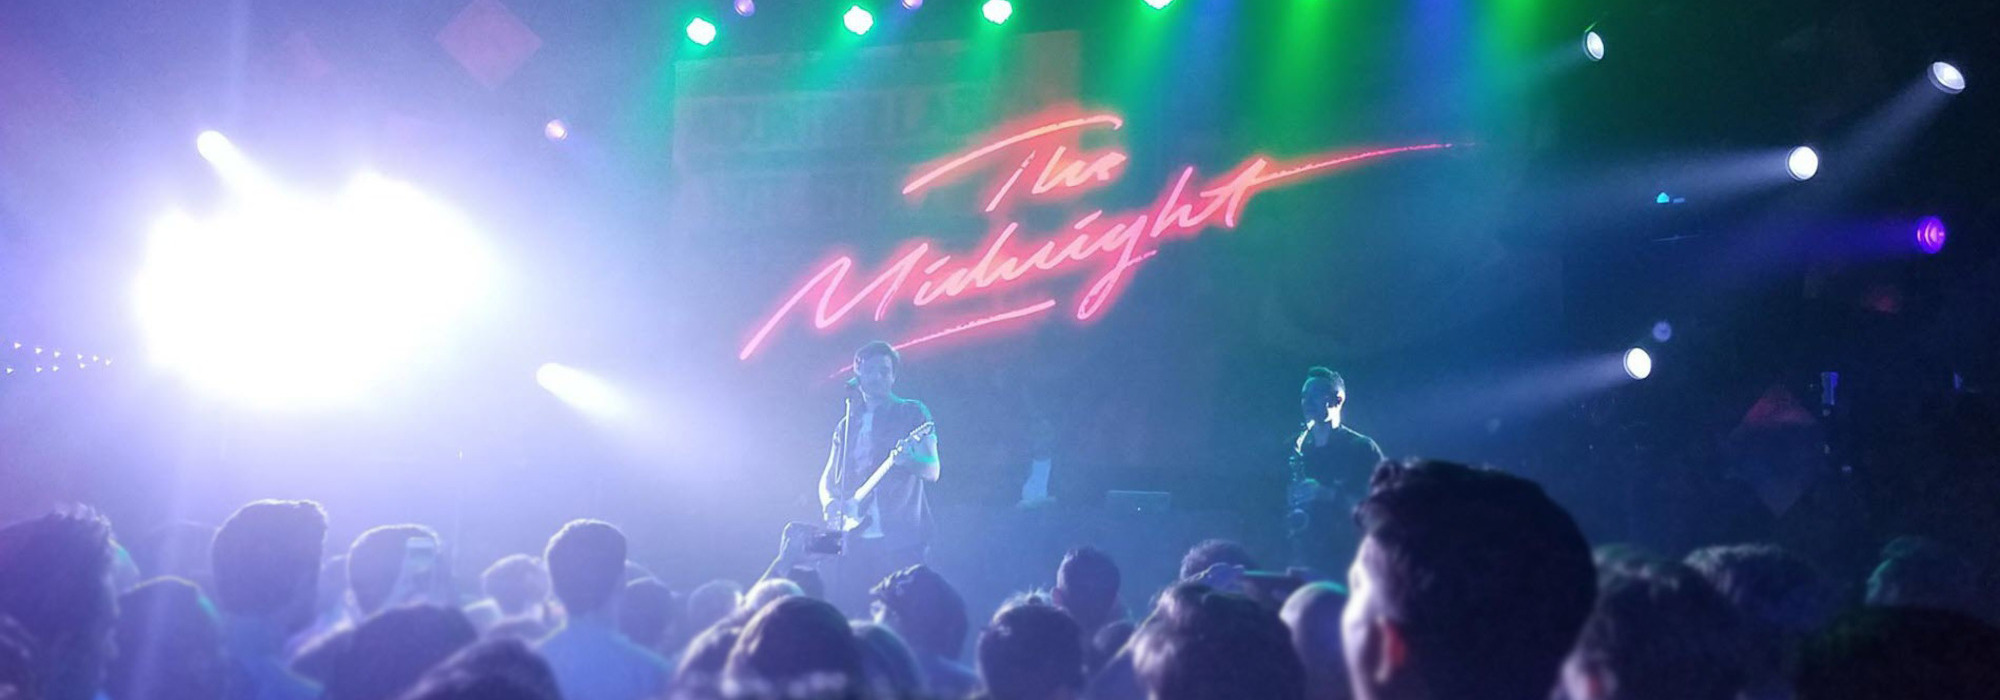 A The Midnight live event